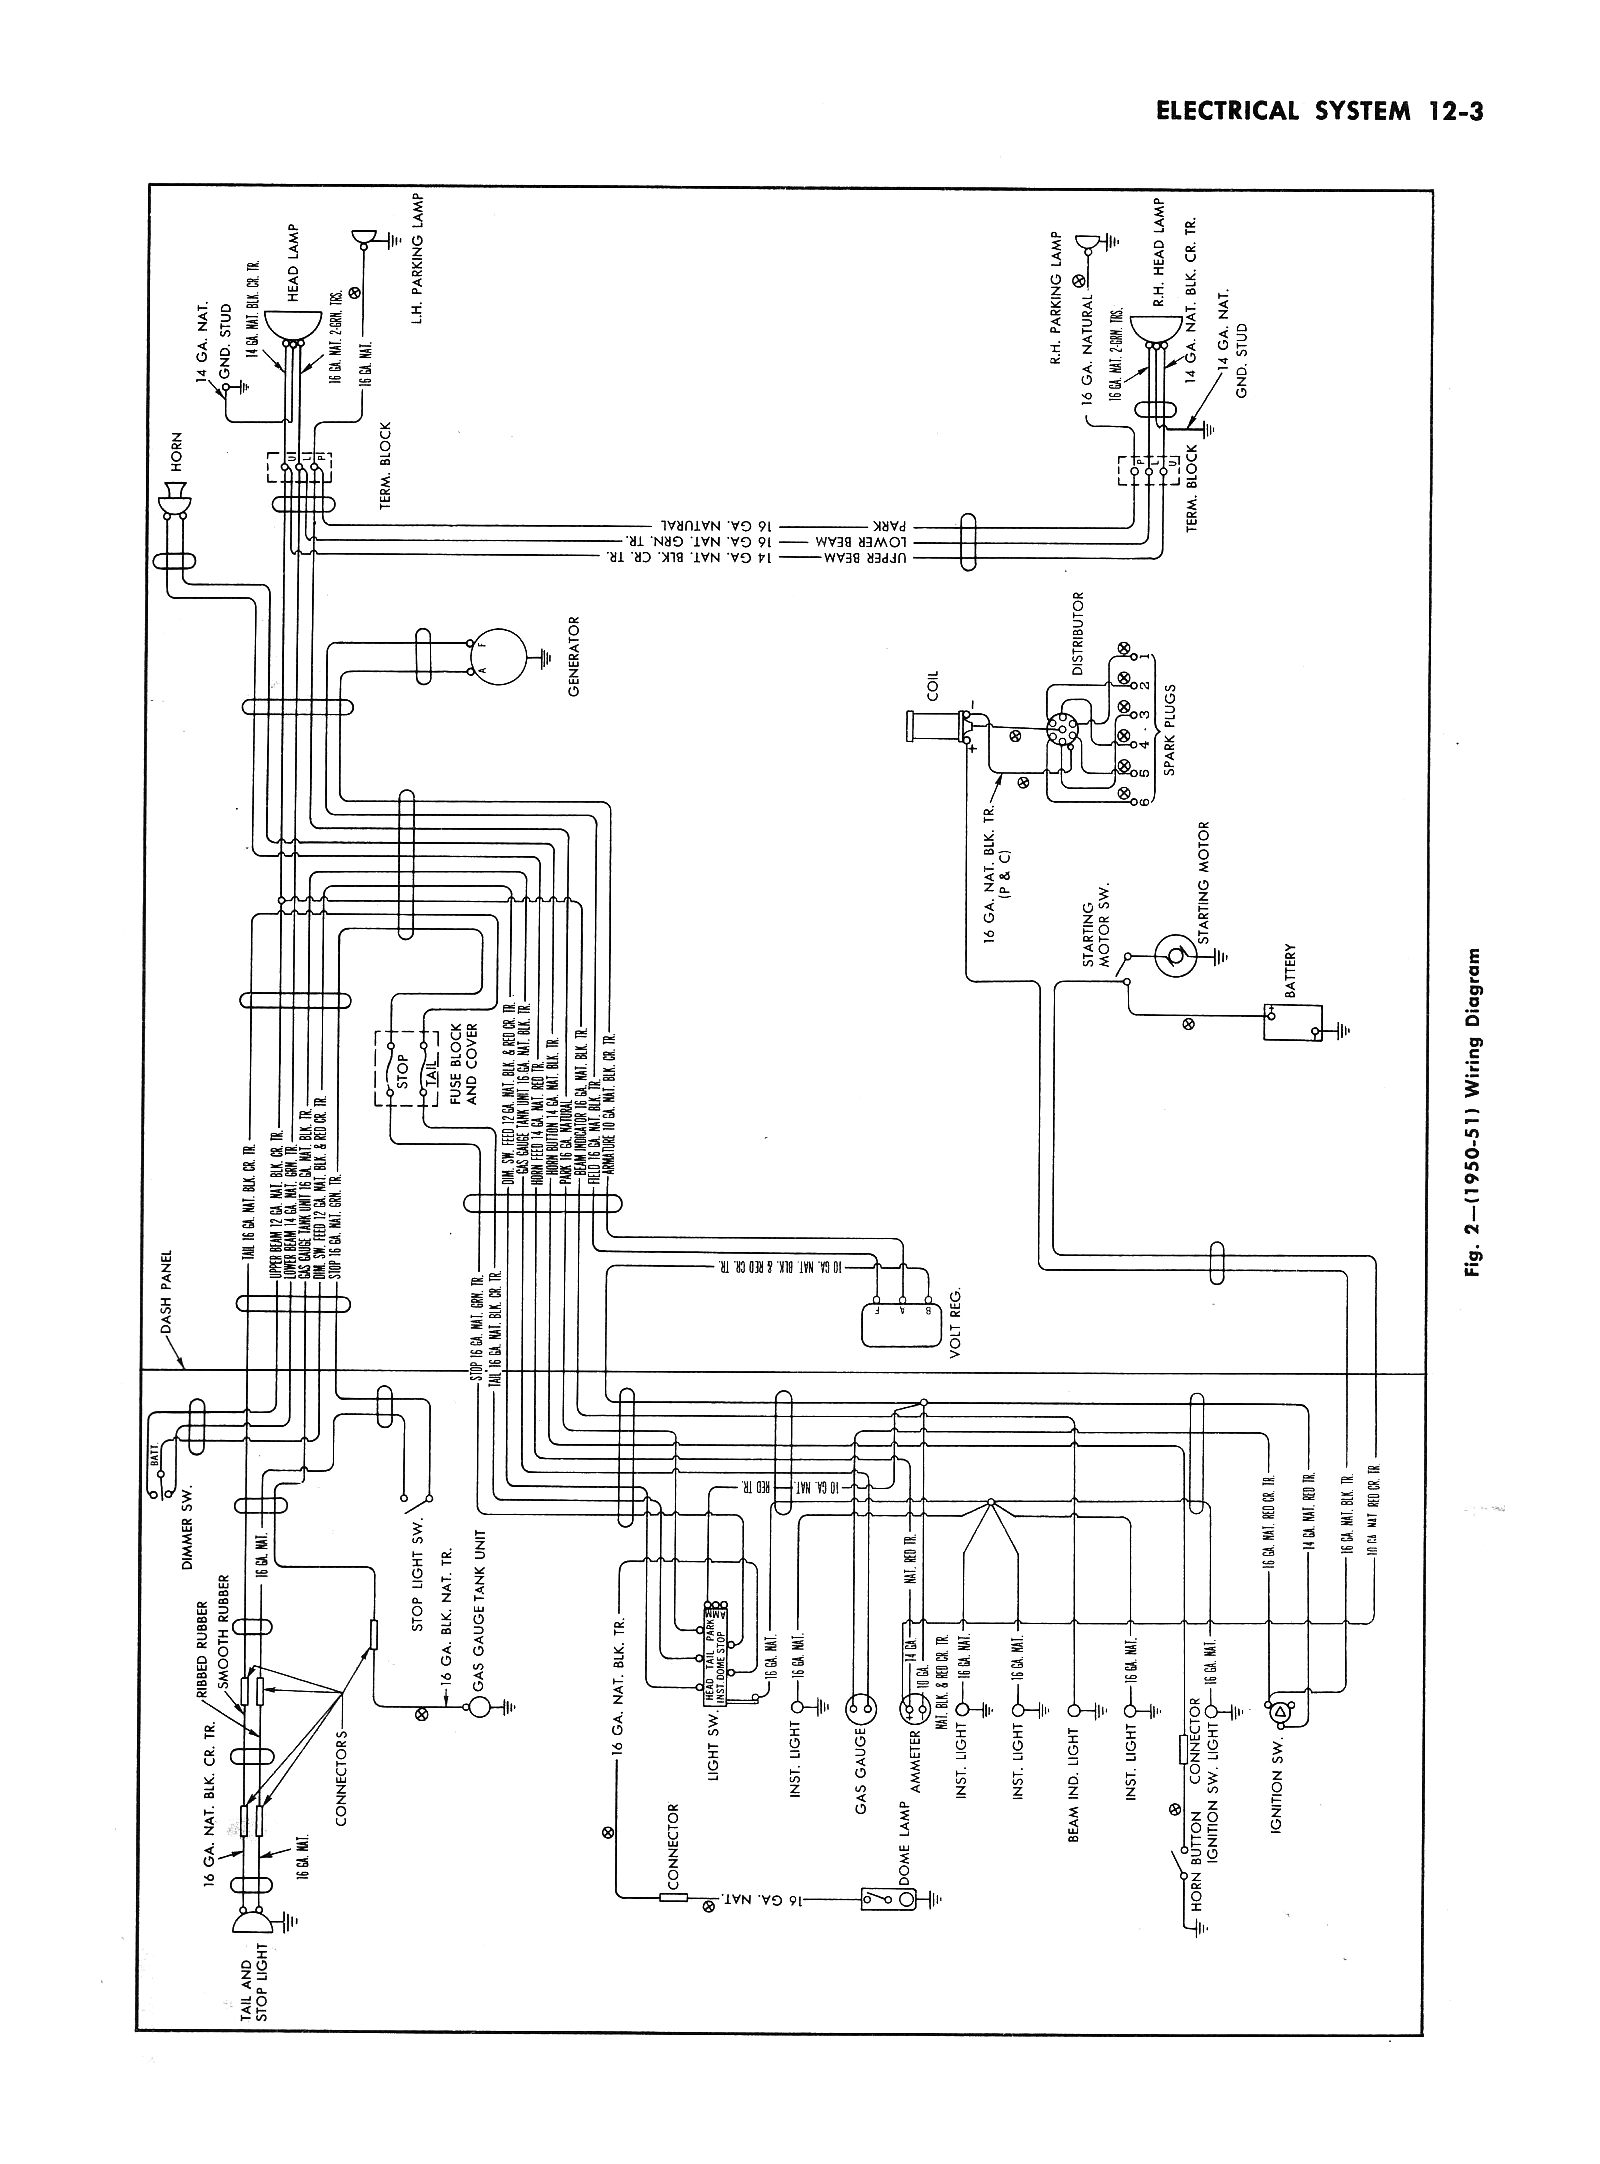 51ctsm1203 1950 chevy truck wiring harness on 1950 download wirning diagrams 1976 chevy truck wire harness at webbmarketing.co